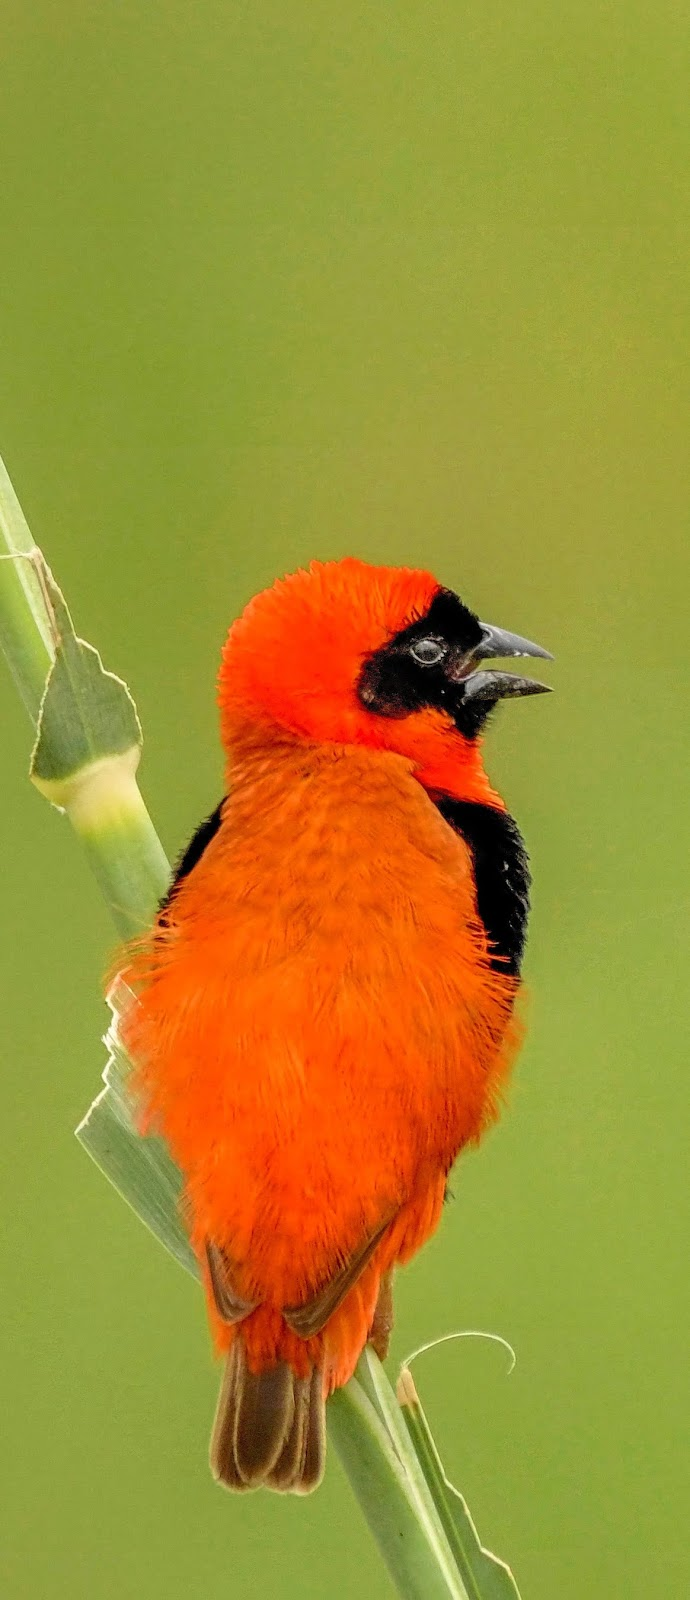 Photo of a southern red bishop.